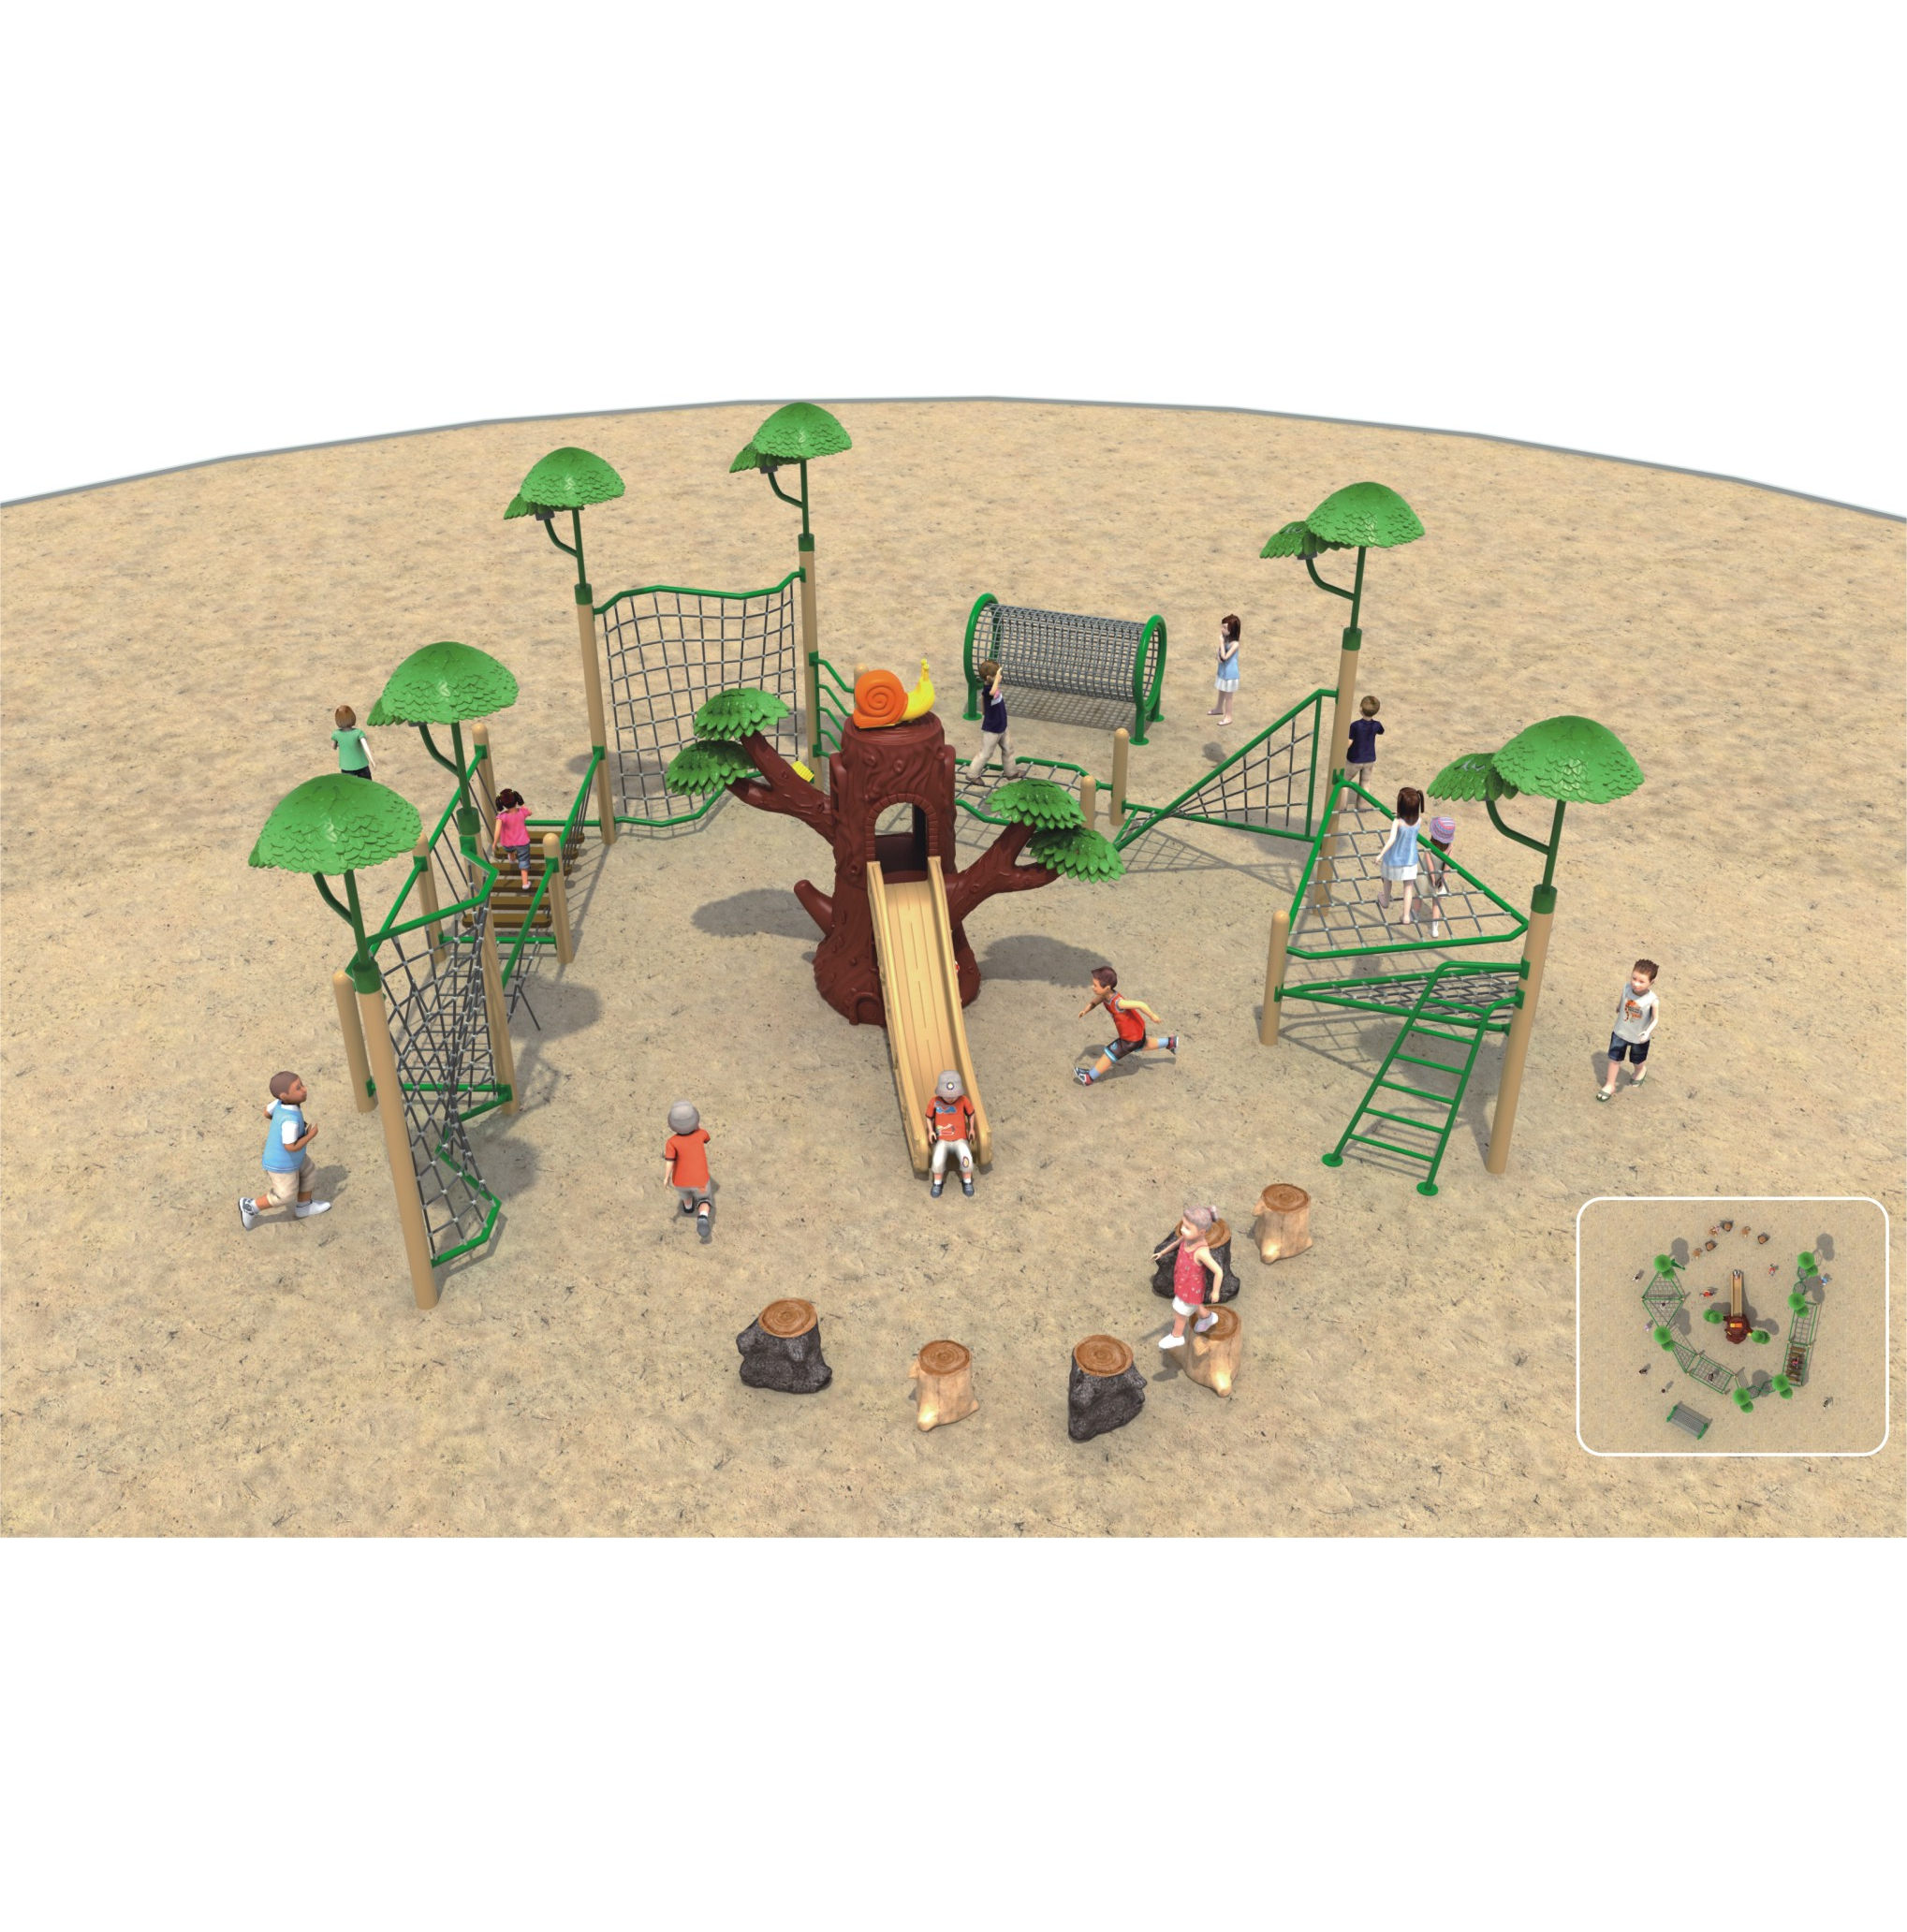 Forest climbing play area space theme big outdoor playground for children